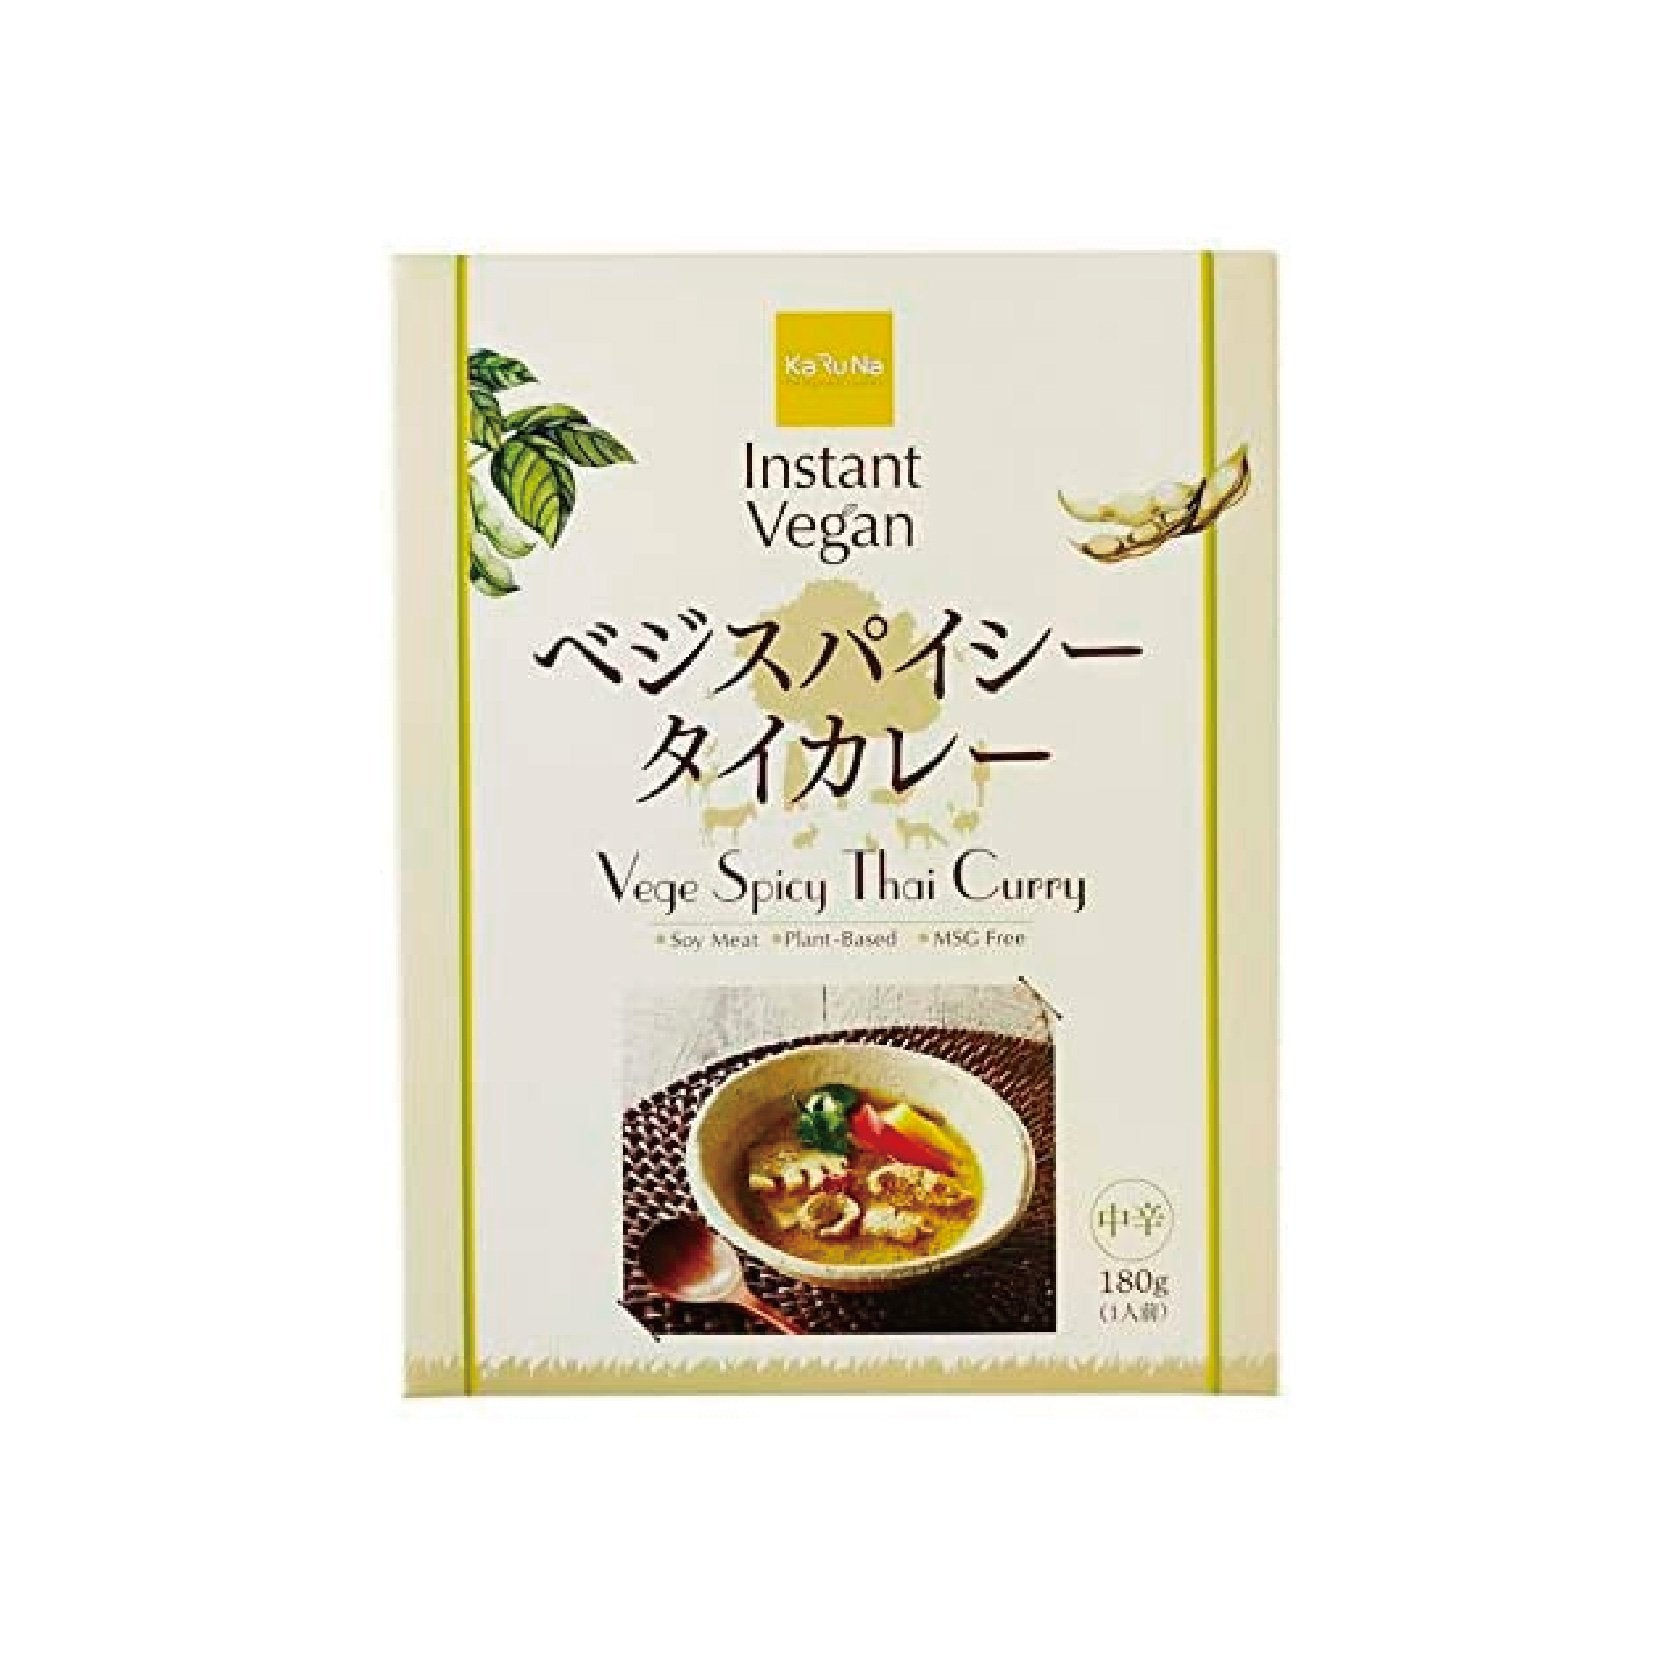 Karuna Vegetable Spicy Thai Curry Sauce [180g]